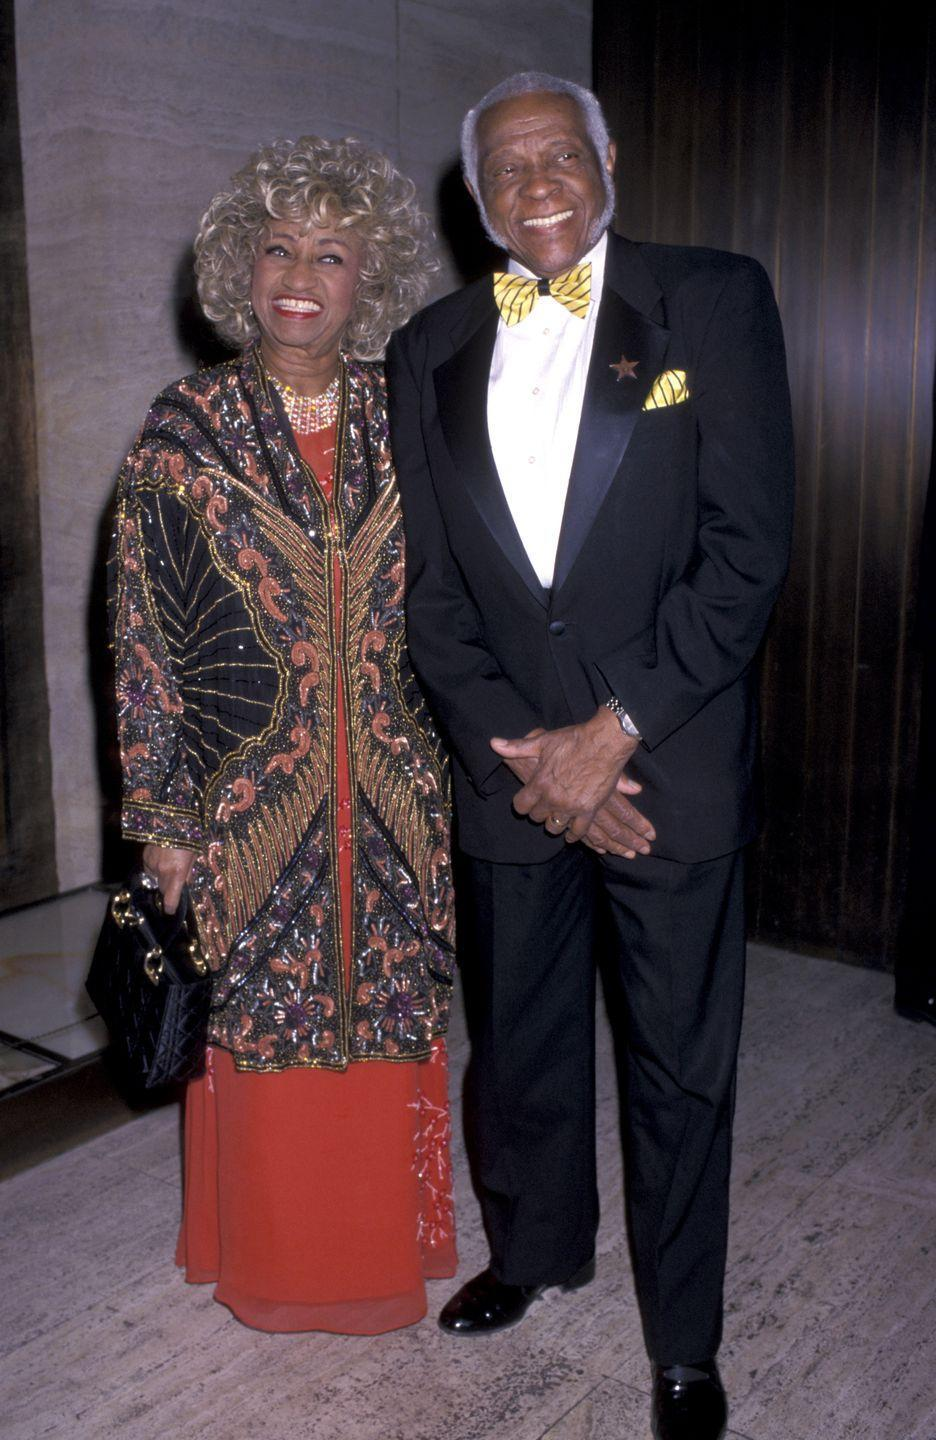 <p>She met the love of her life, Pedro Knight during her time in Sonora Matancera. He was a trumpeter in the band and later became Cruz's manager. The couple married in a civil ceremony on July 14, 1962, and celebrated 41 years of marriage.</p>